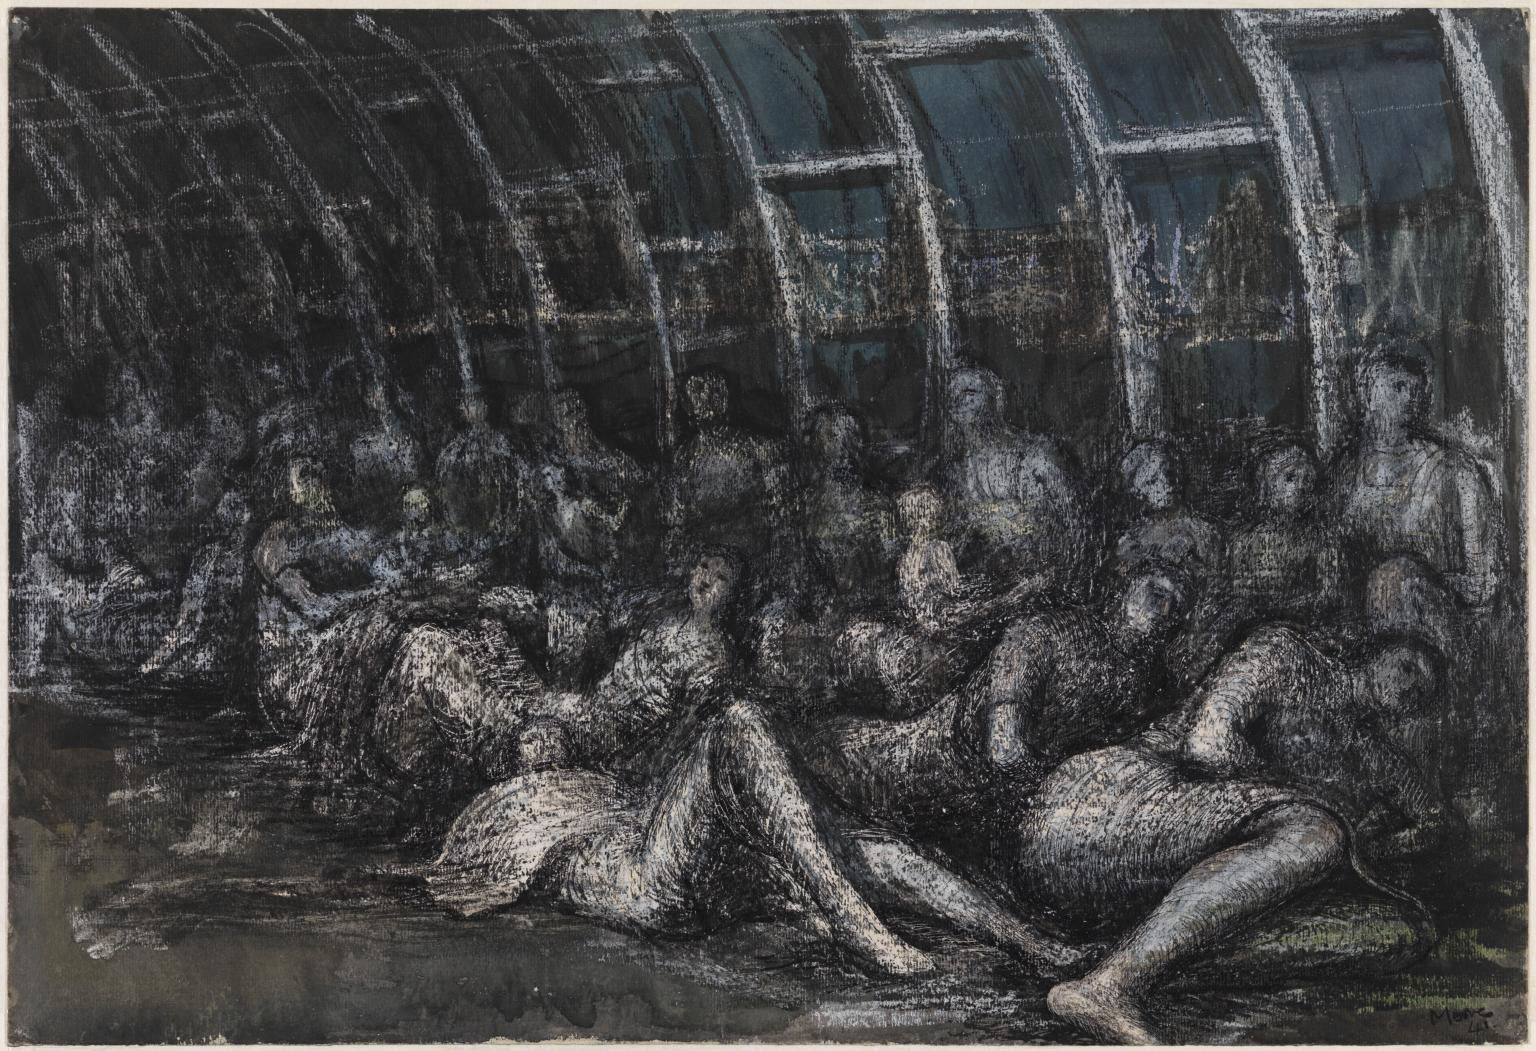 Shelterers in the Tube 1941, Graphite, ink, watercolour and crayon on paper, Henry Moore, (Image courtesy of the Tate)